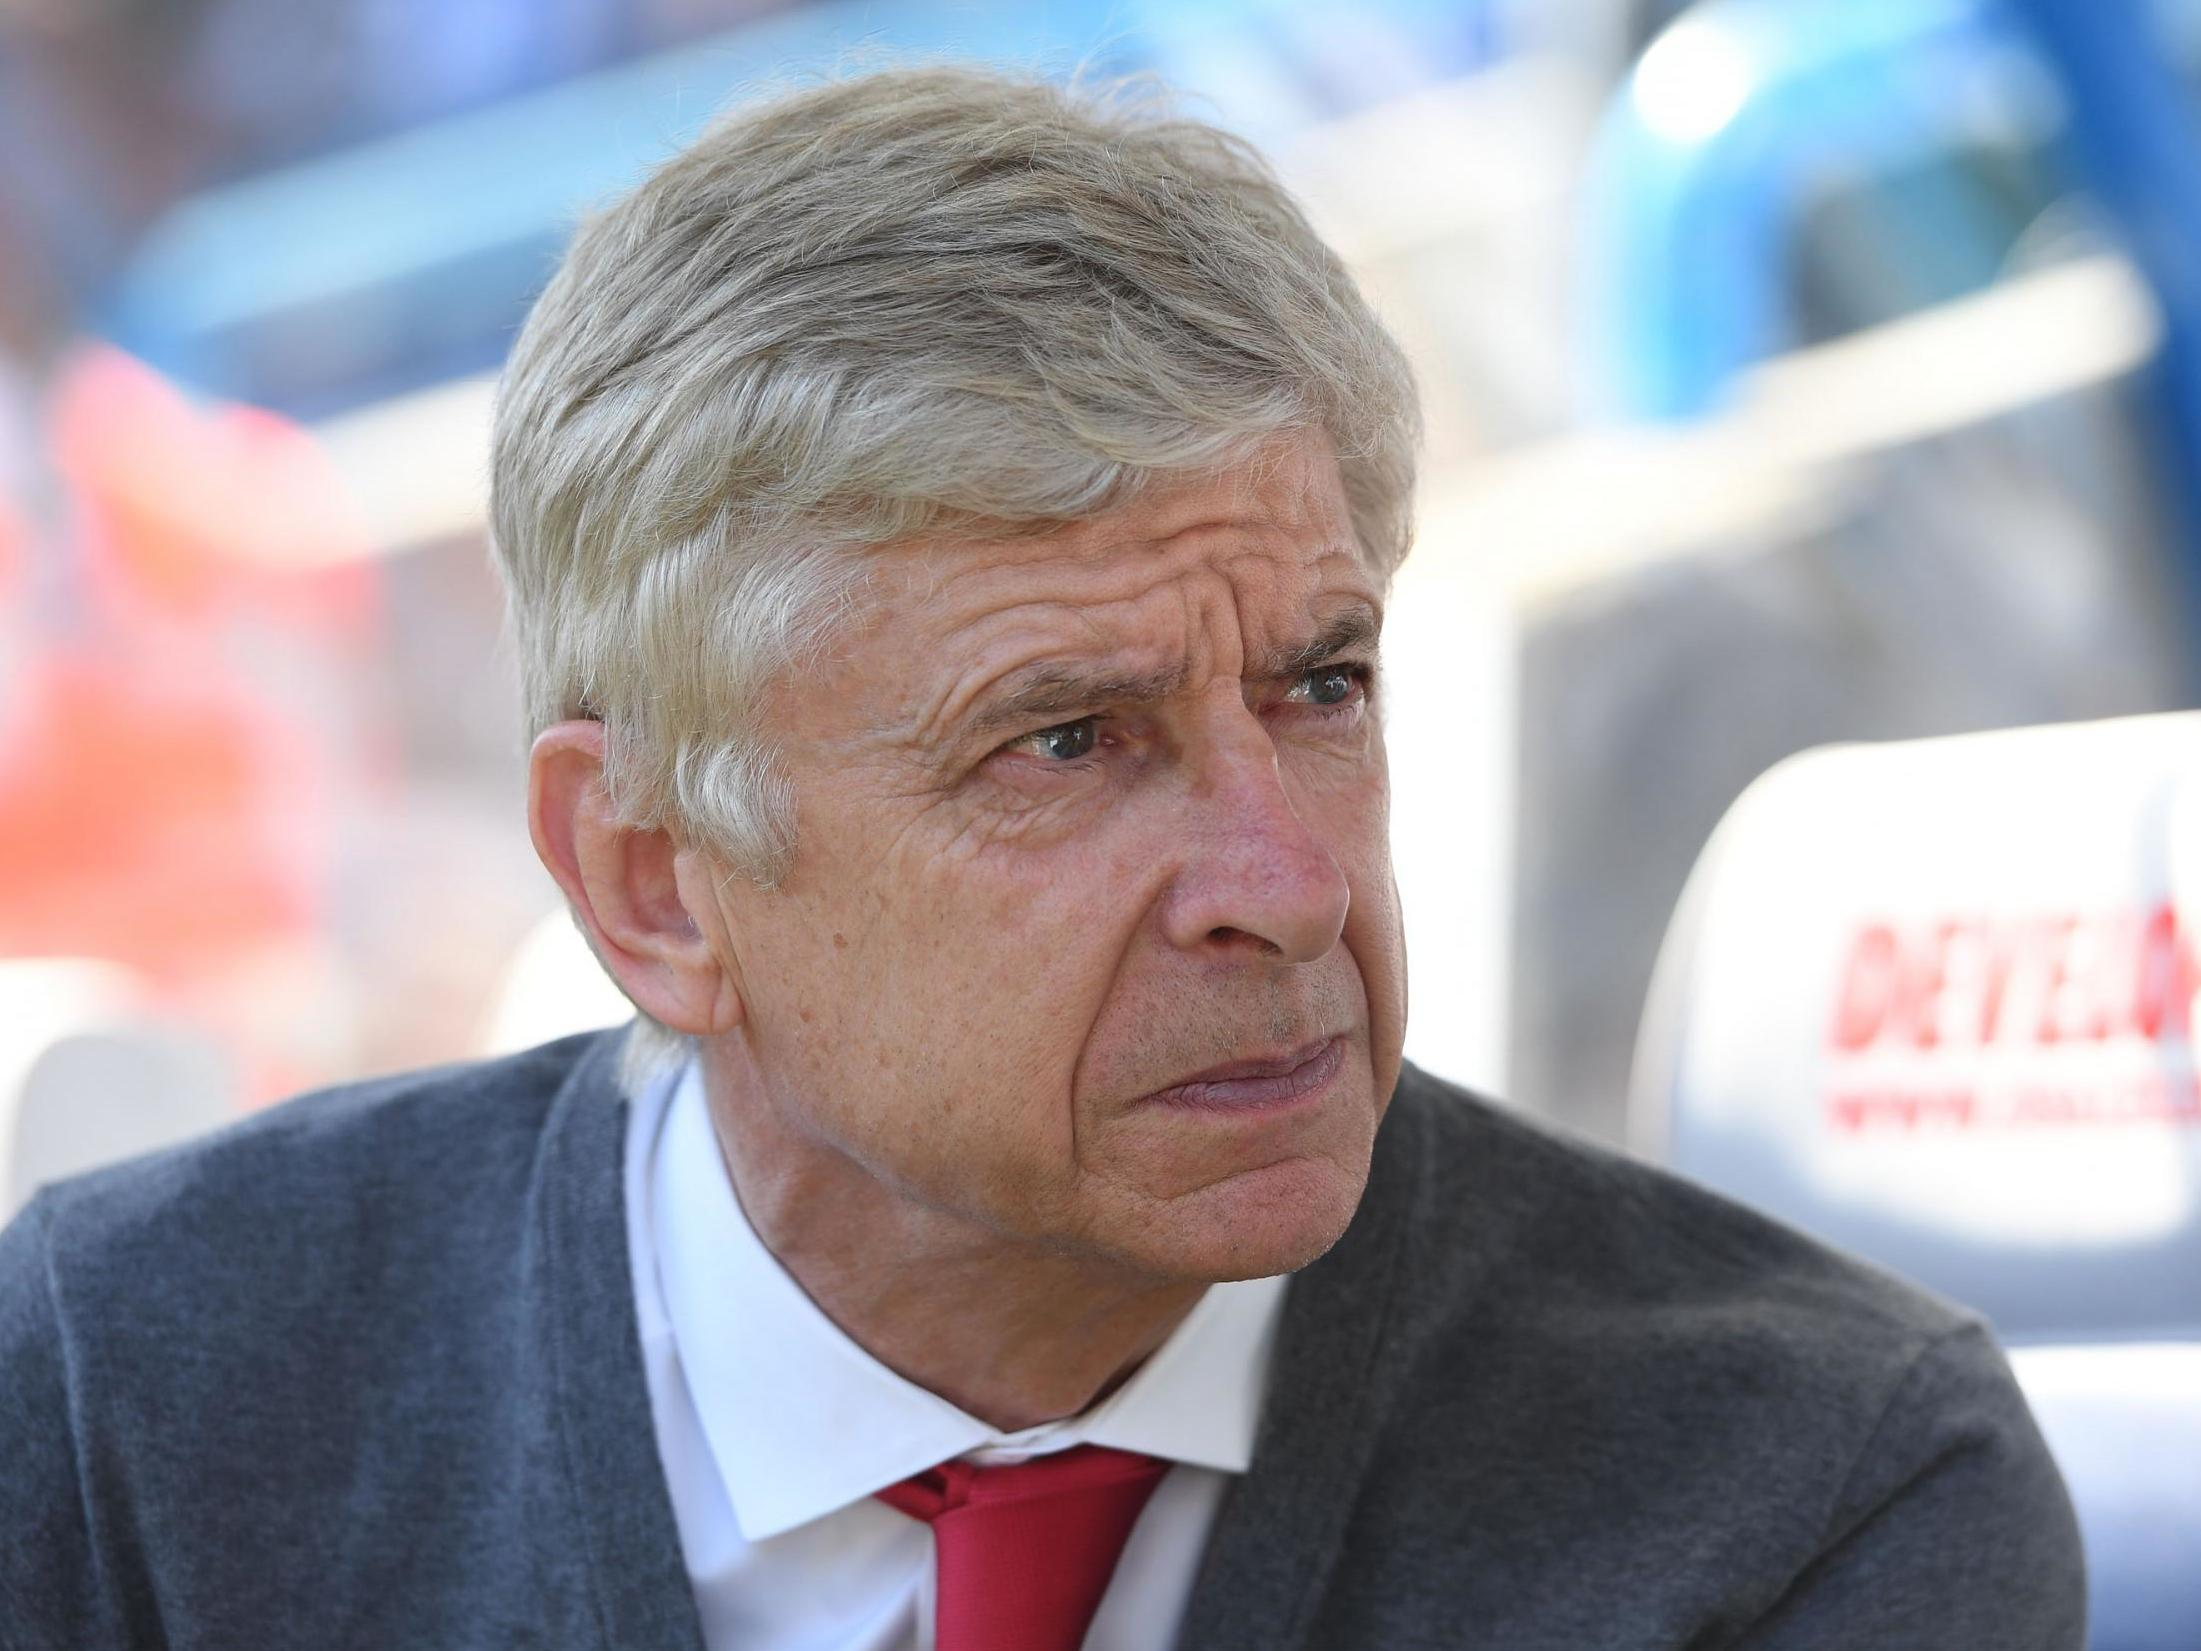 Arsene Wenger will start new job by 'beginning of 2019'